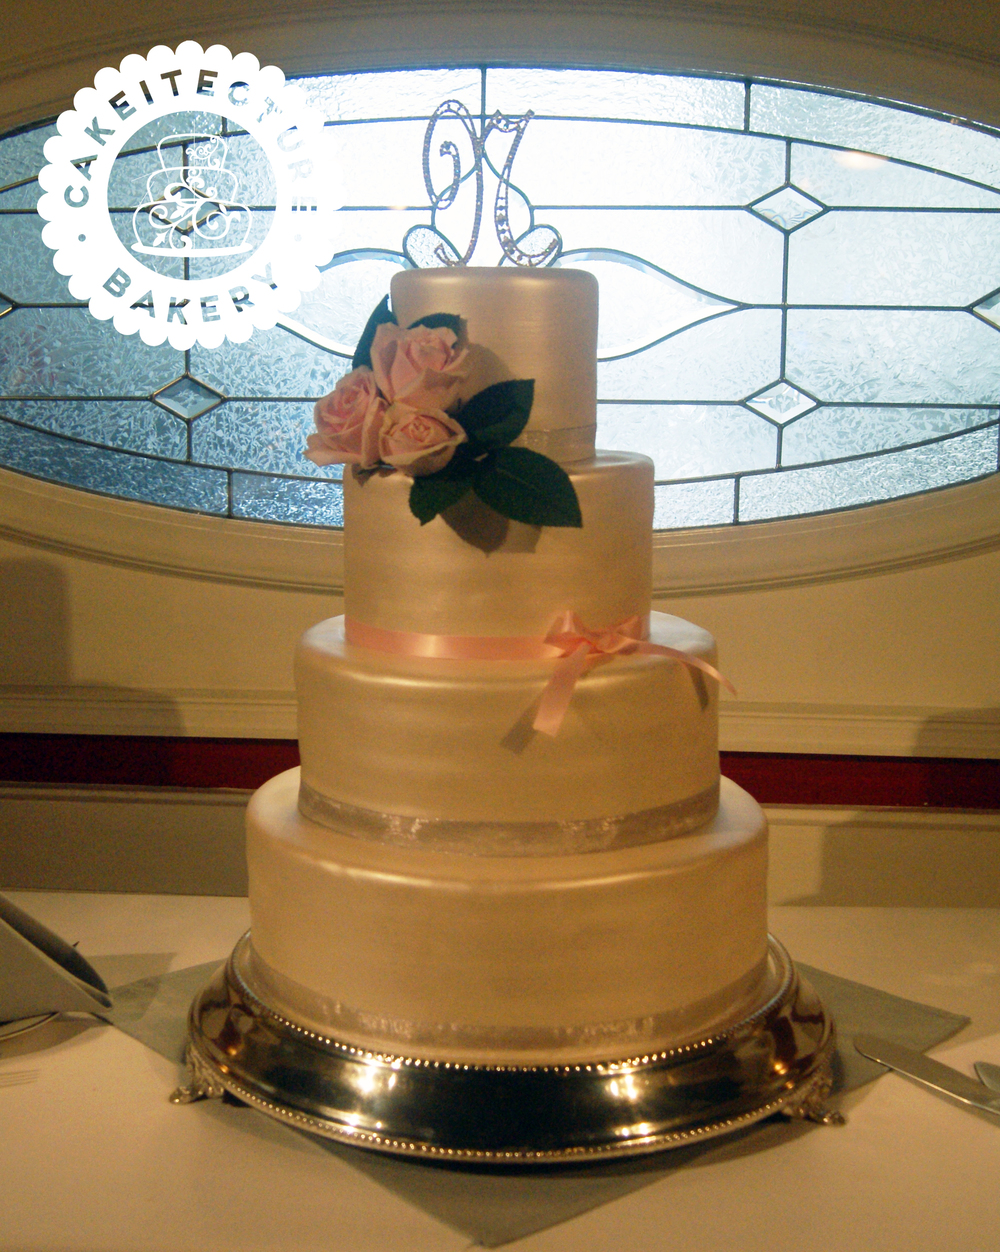 Satin Wedding Cake.jpg